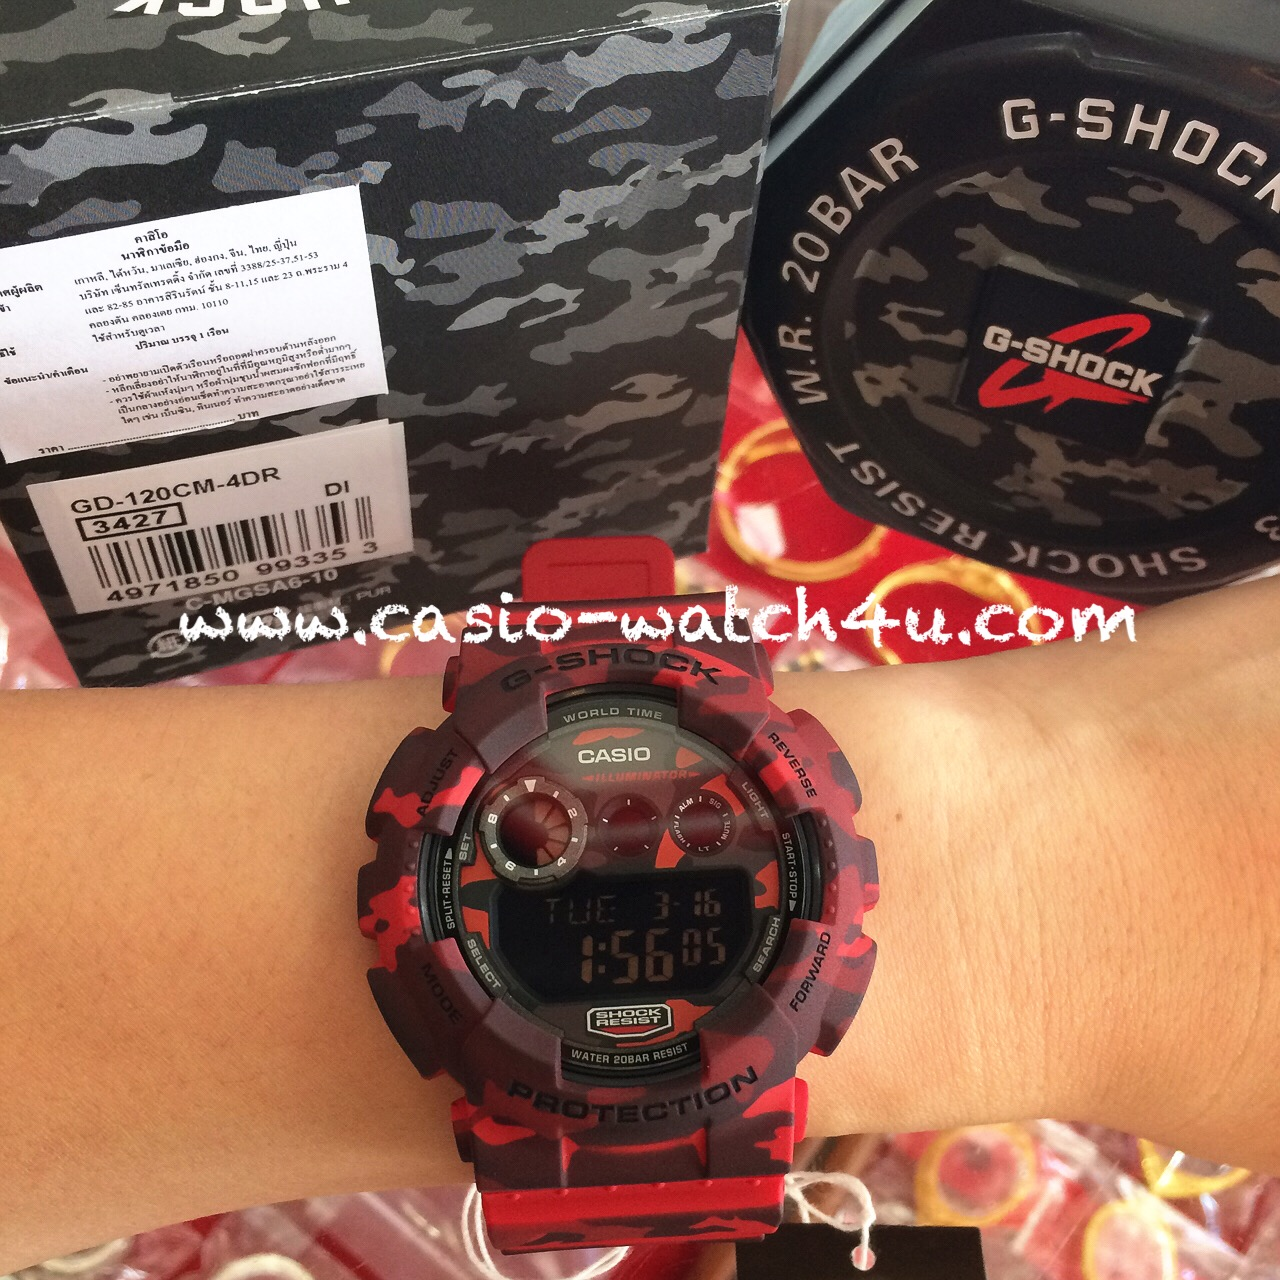 Casio G Shock Limited Color Gd 120cm 5 Camouflage 4dr Series 120